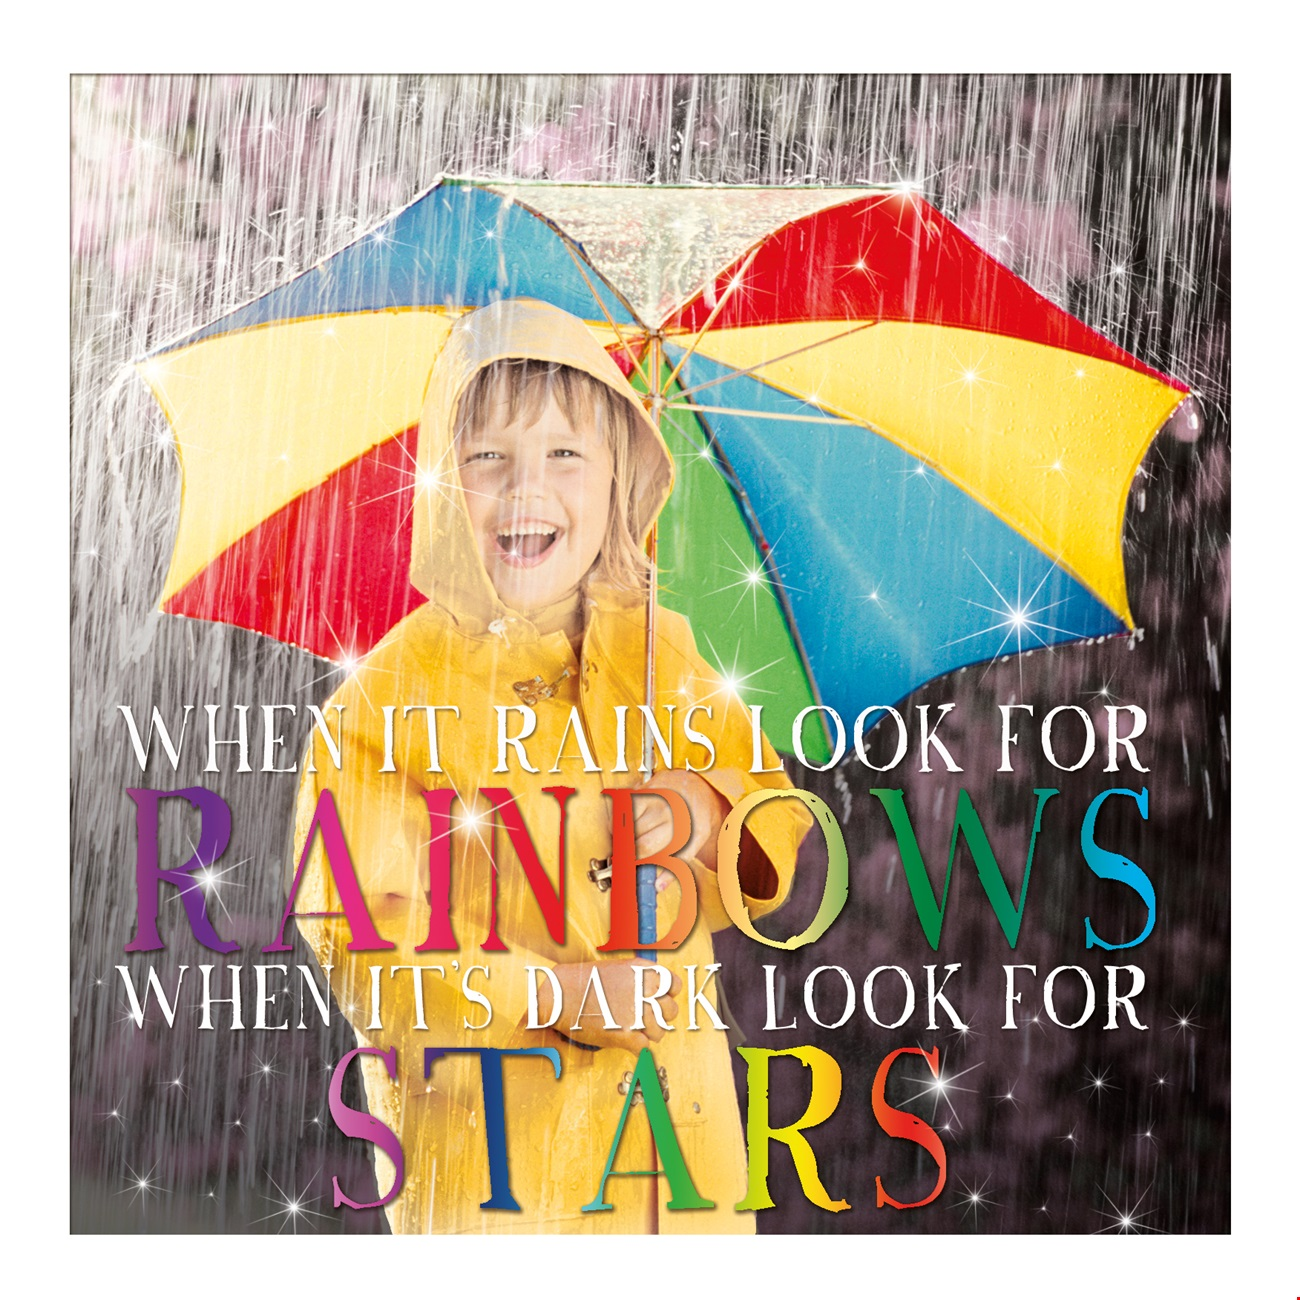 Greetings Card - Rainbows and Stars